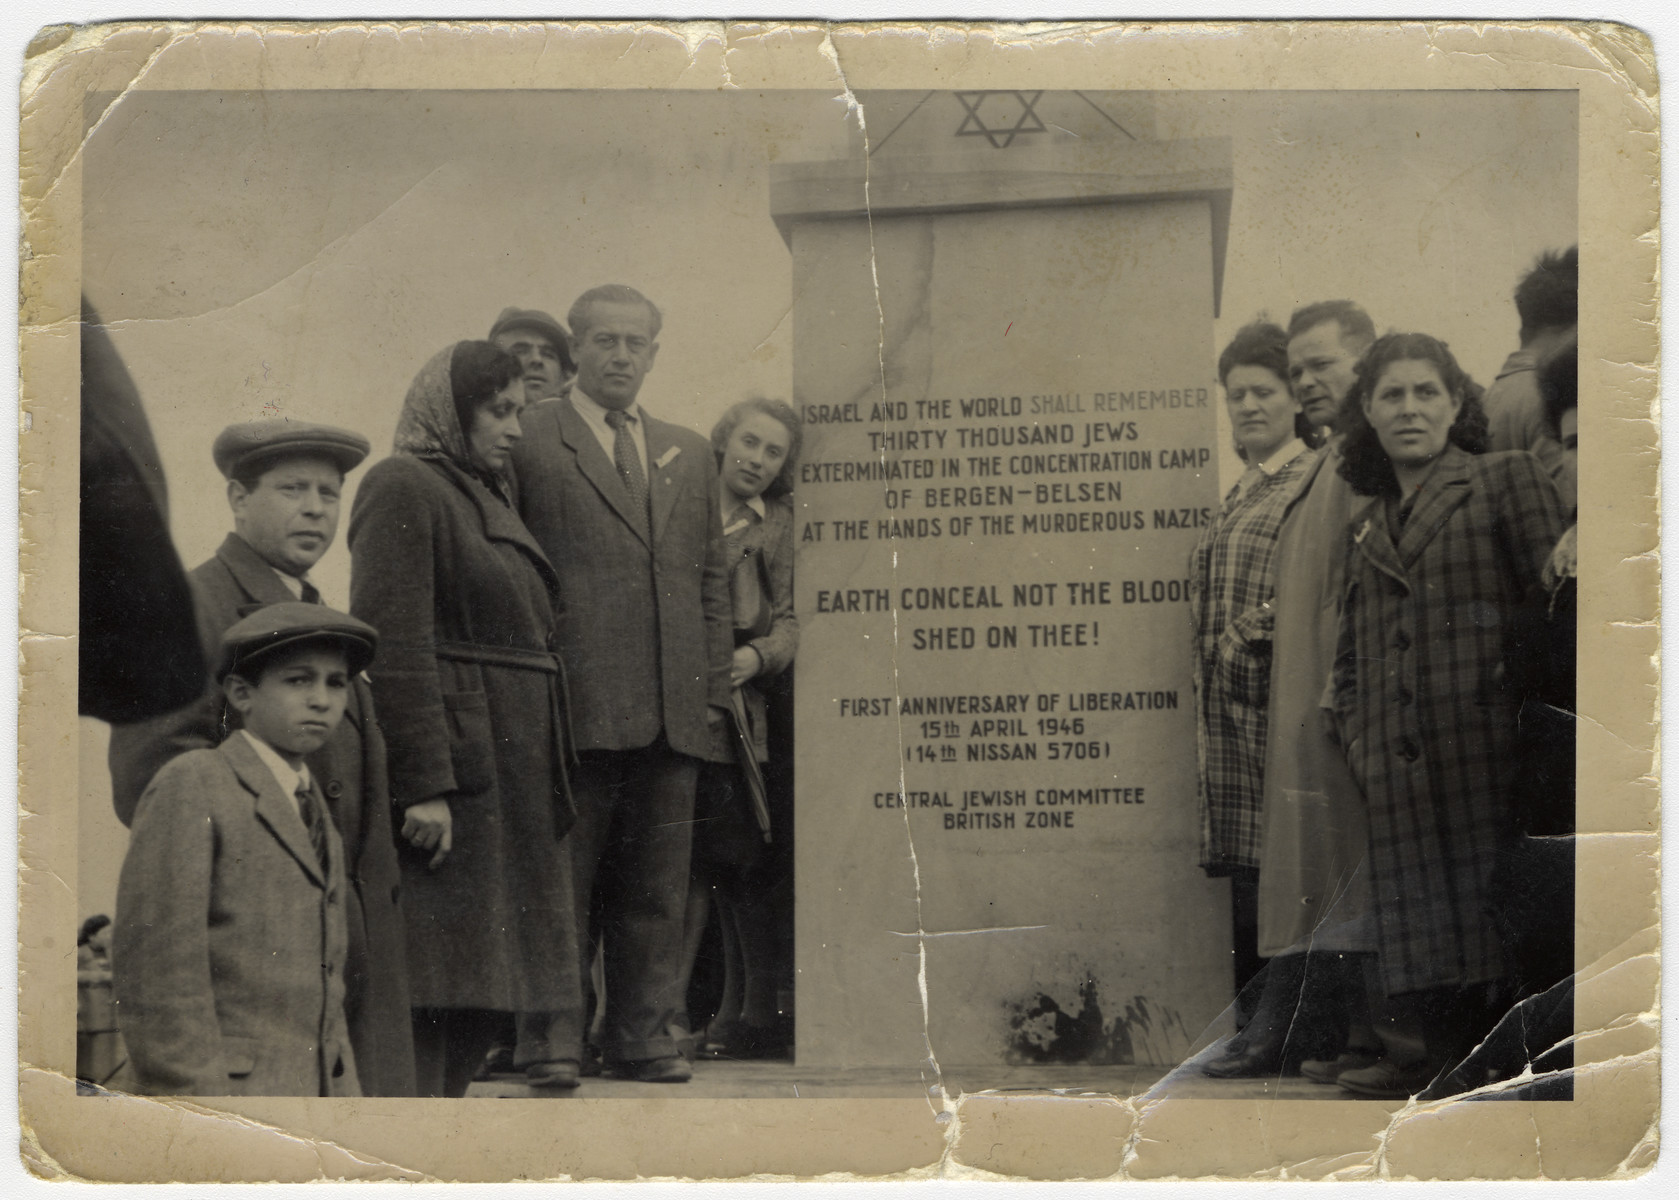 Survivors pose by the Bergen-Belsen memorial.  Standing on the left side: Man-wearing cap next to boy with cap is Mr. Srulek  Schwartzbaum (he became a furrier in Montreal, Canada); the fourth gentleman up, wearing a pin on his lapel is Elias Rosengarten.  The woman next to the monument wearing a white blouse is Esther Rosengarten.